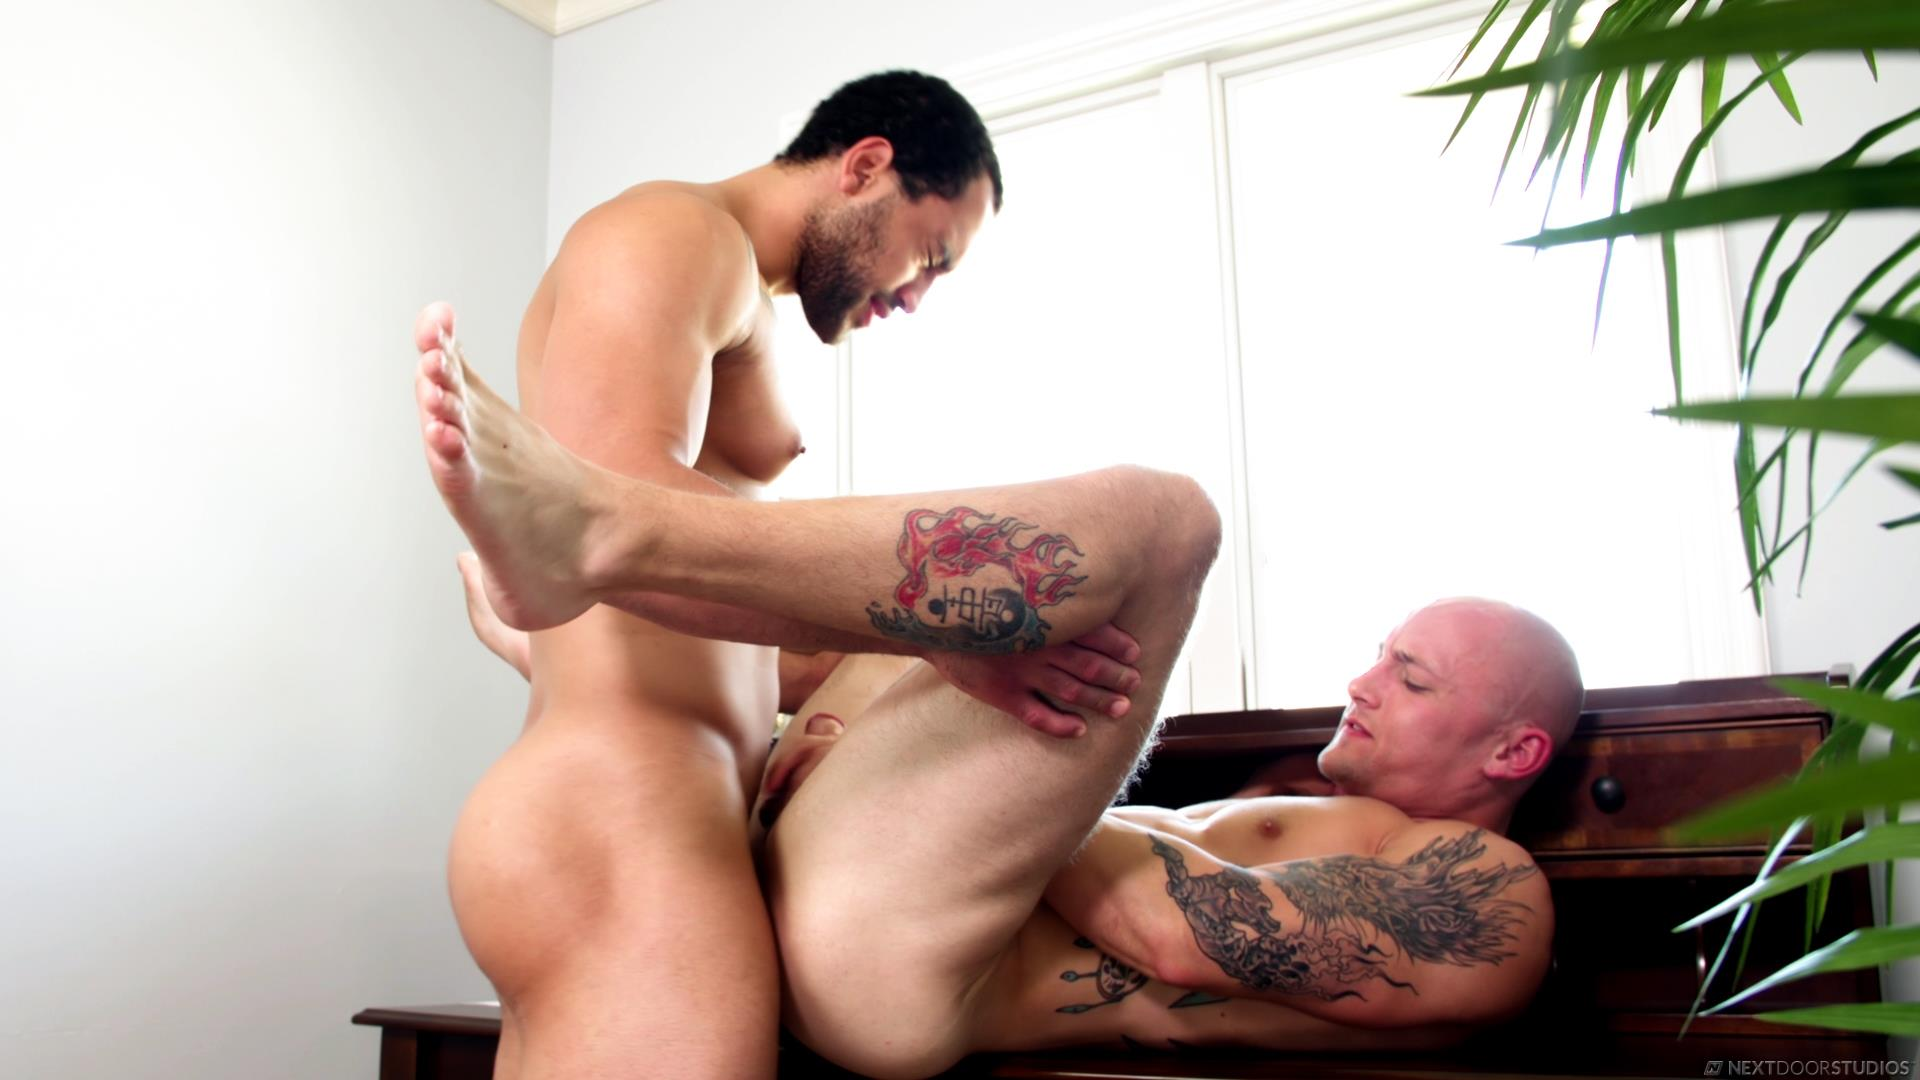 Next-Door-Buddies-Trevor-Laster-and-David-Rose-Bareback-Muscle-Flip-Fuck-Video-12 Bareback Flip Muscle Fuck With Trevor Laster and David Rose